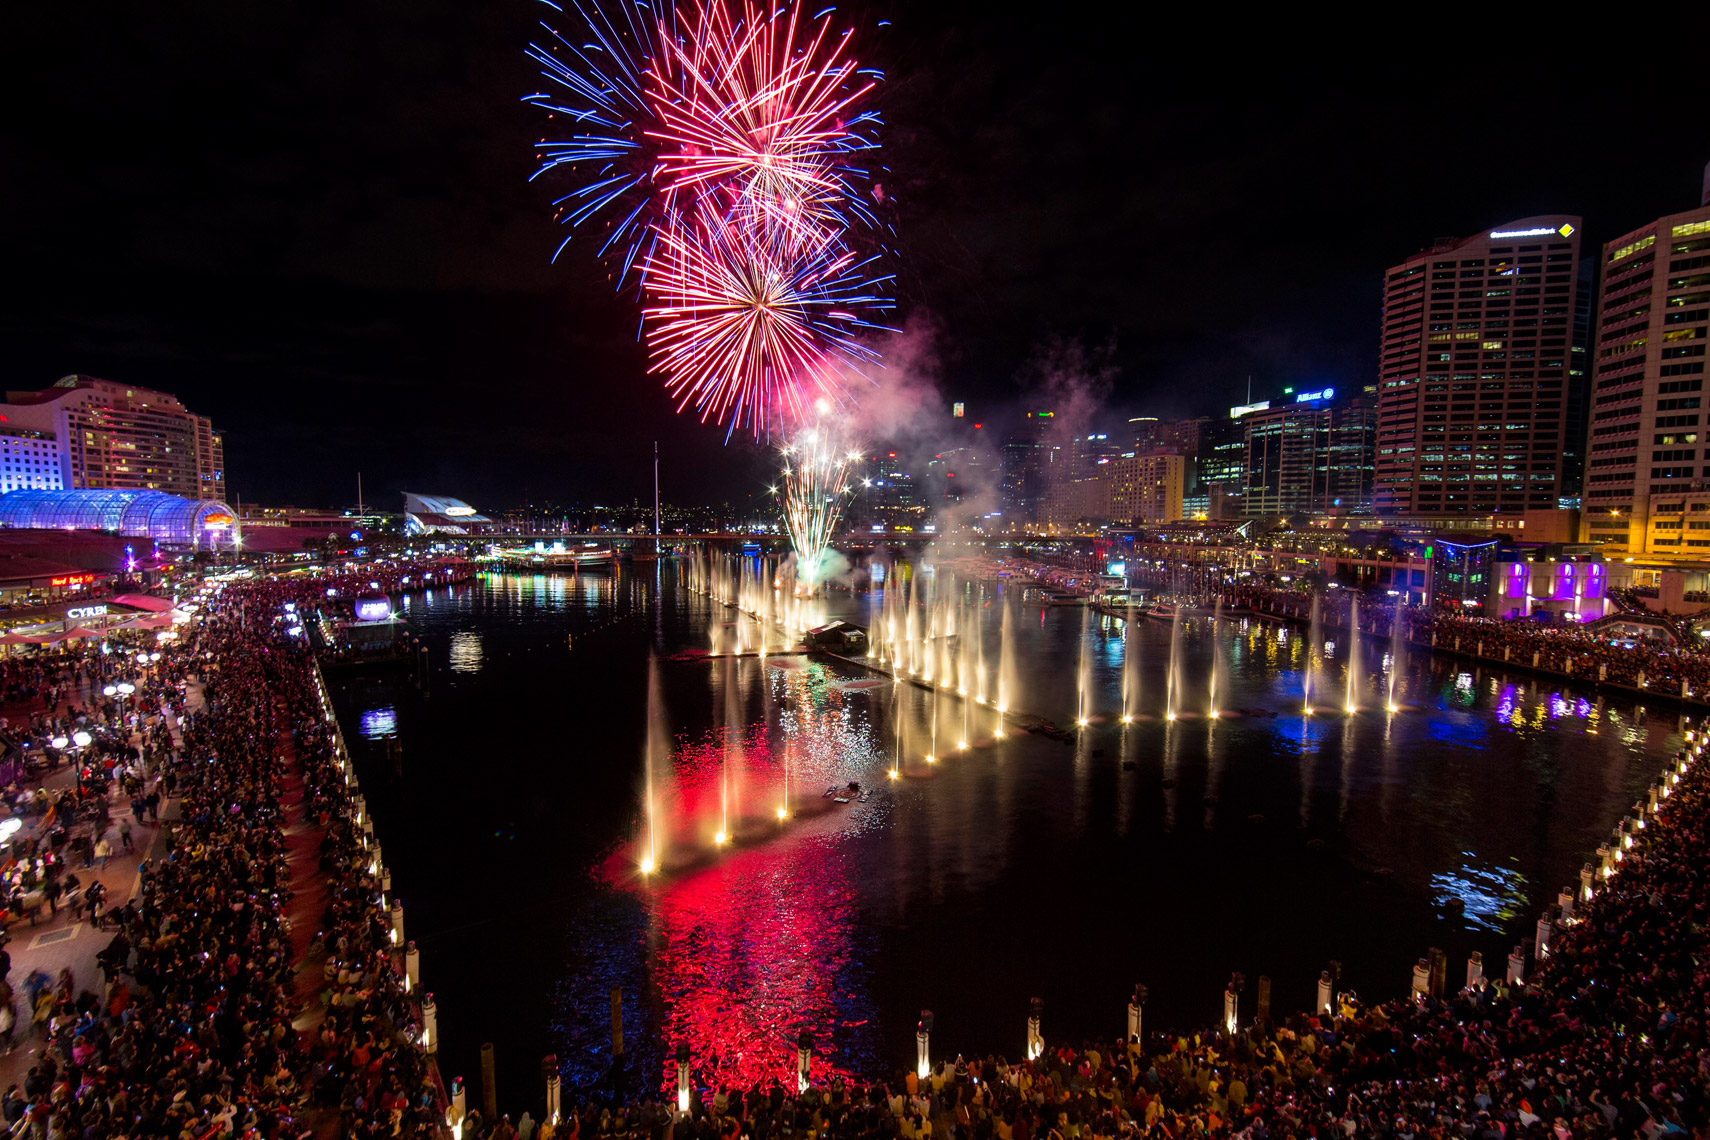 Vivid-Sydney-2014_Aquatique_Darling-Harbour_James-Horan_DNSW-092